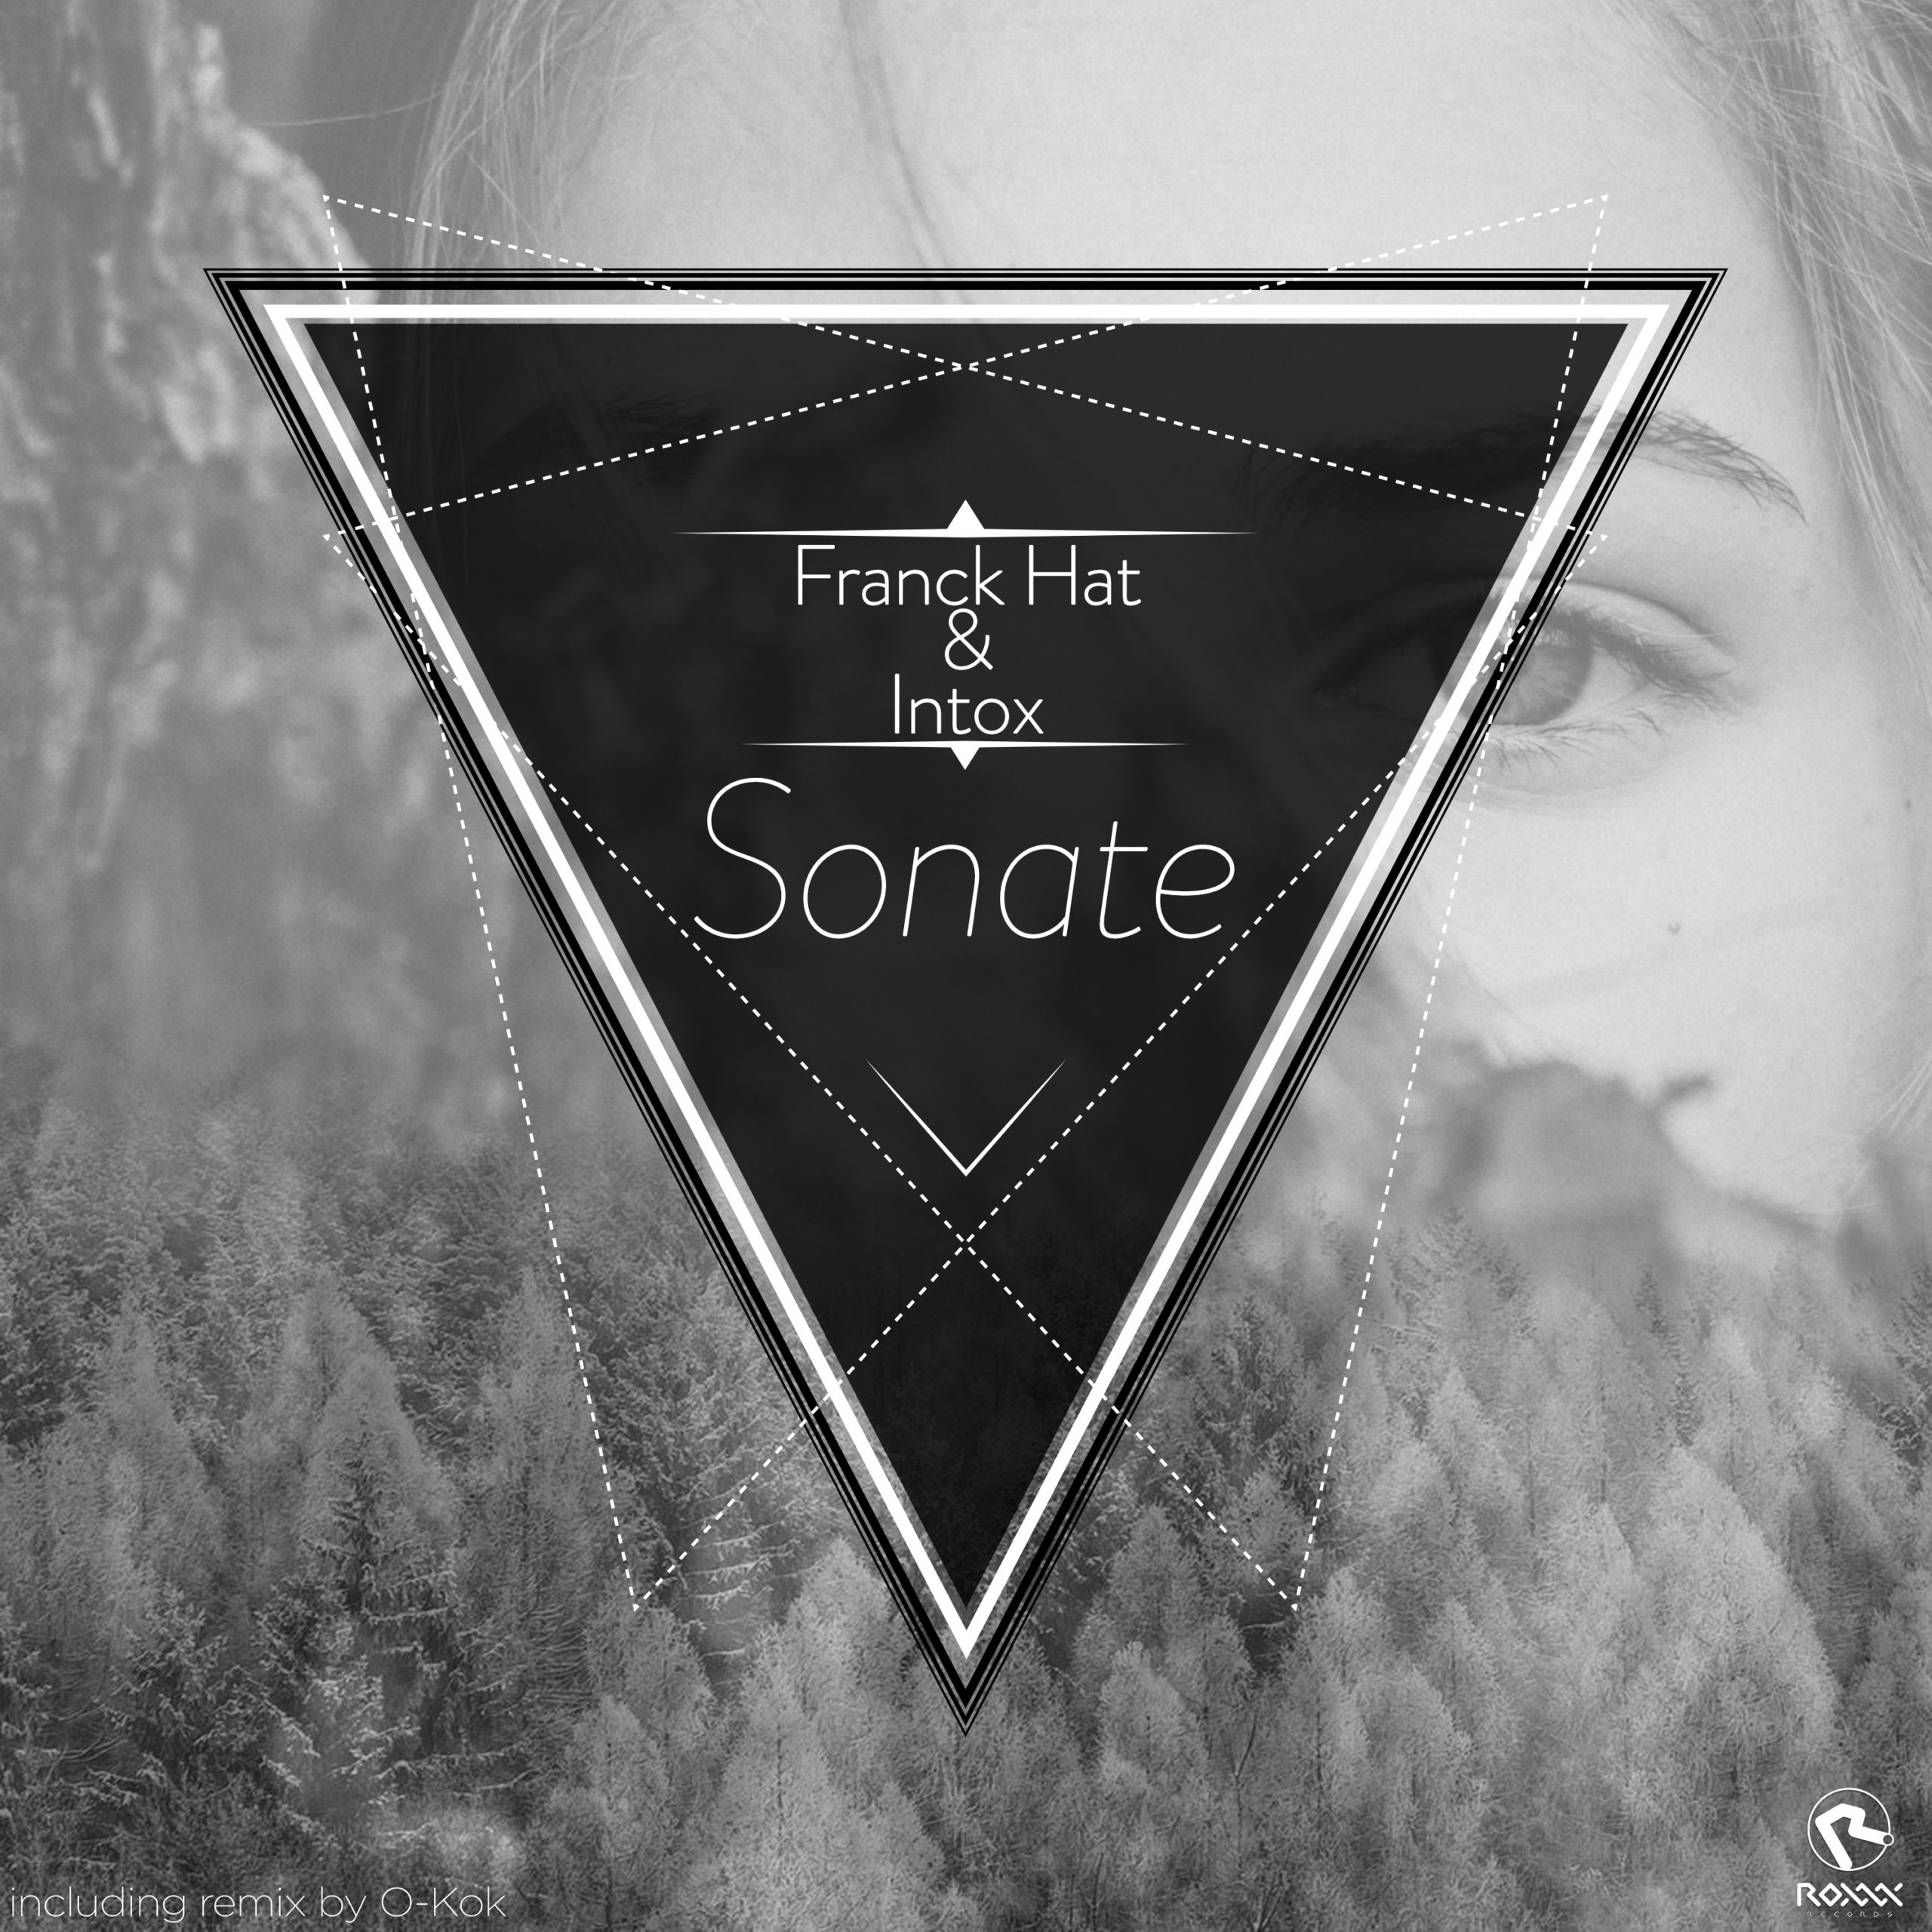 Sonate - Franck Hat & Intox